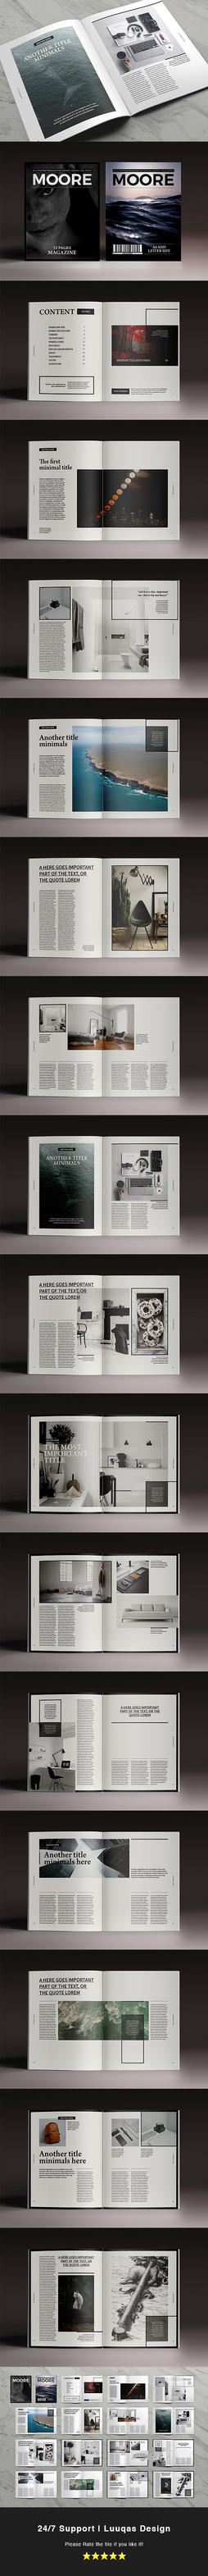 Moore Magazine Indesign Template by luuqas